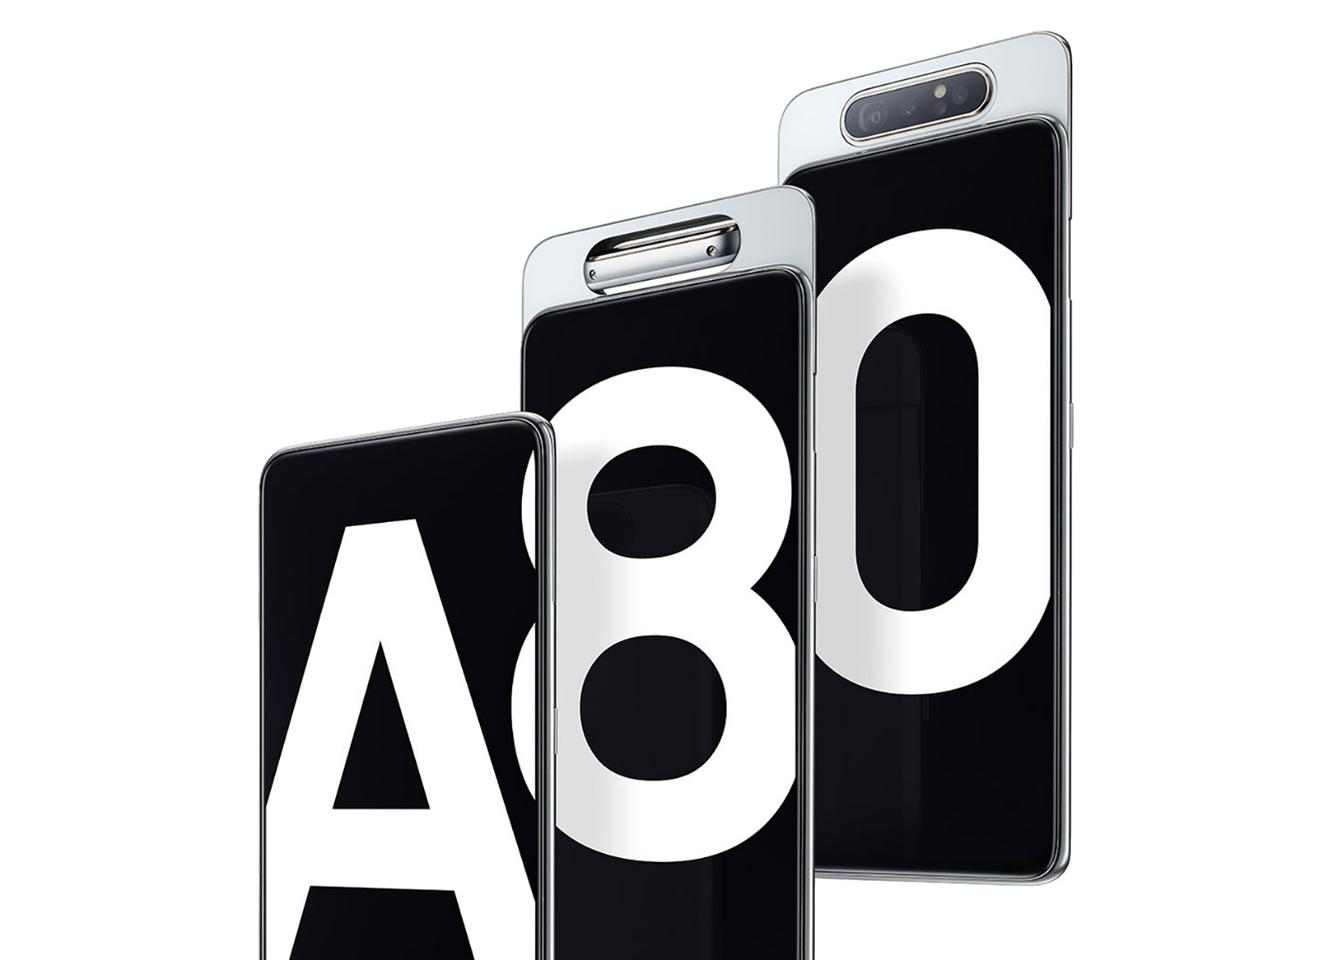 The Samsung Galaxy A80 takes its spot at the top of the new A series